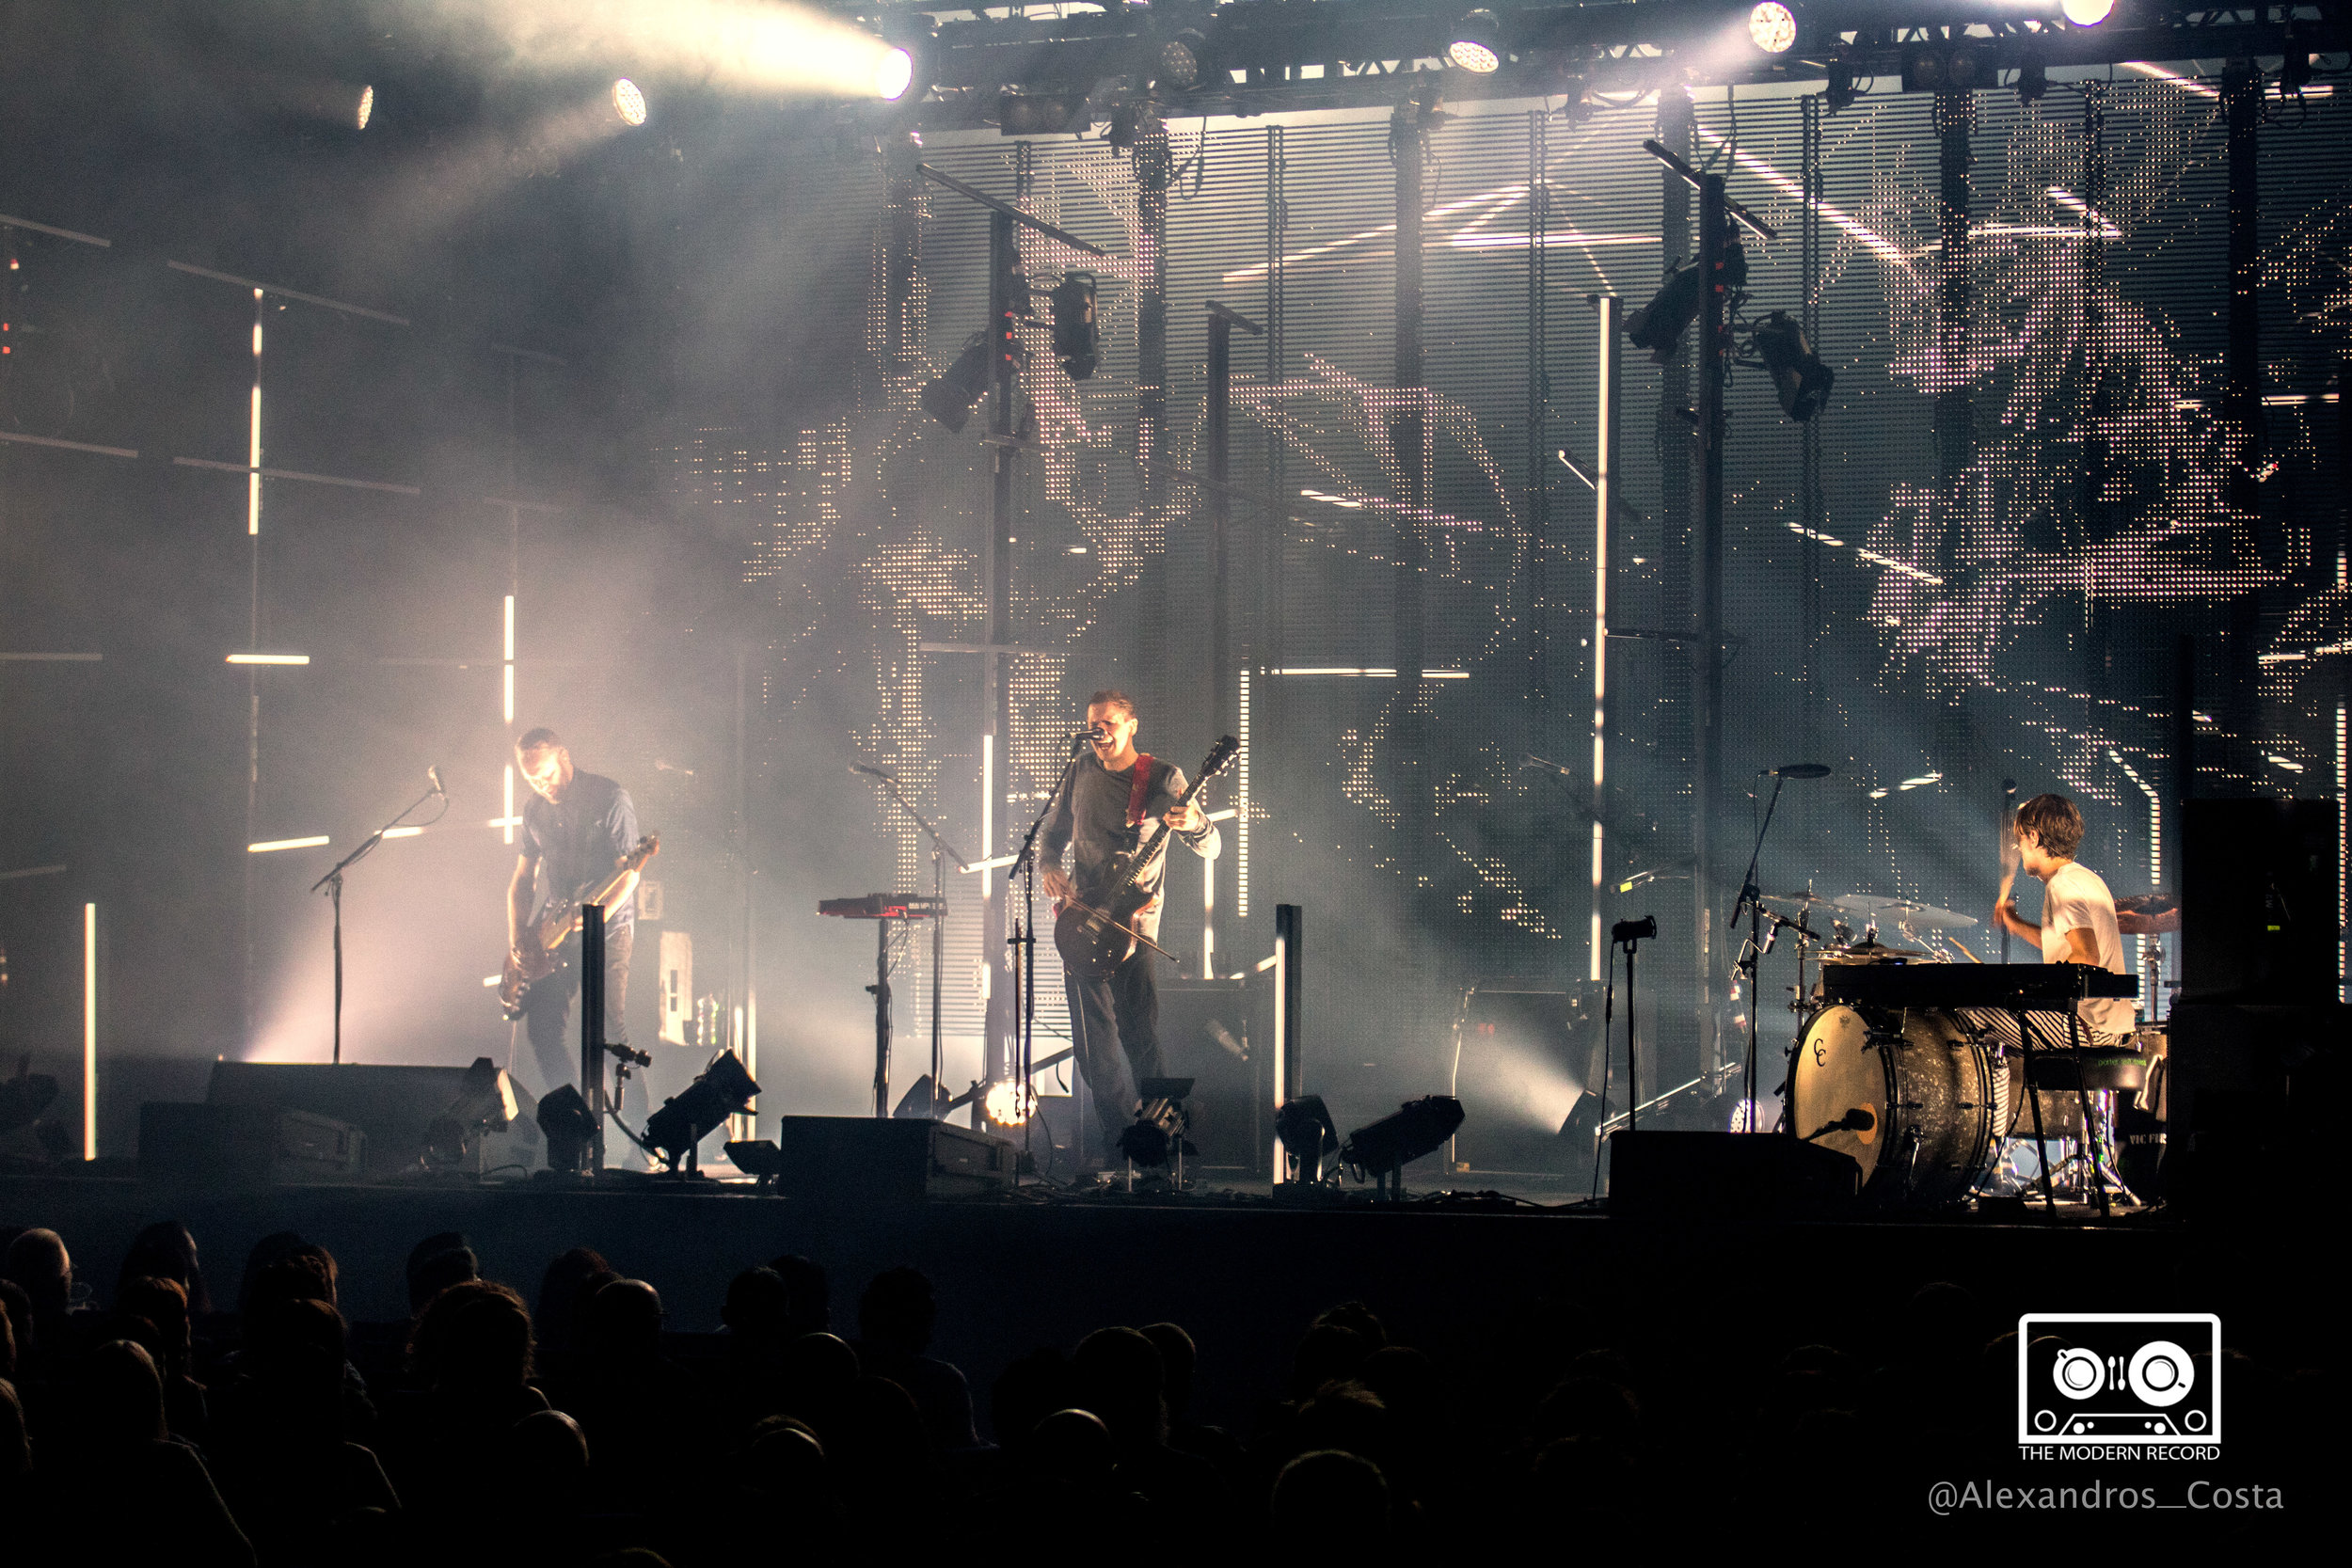 SIGUR RÓS PERFORMING AT GLASGOW'S SEC ARMADILLO - 25/09/2017  PICTURE BY: ALEXANDROS COSTA PHOTOGRAPHY